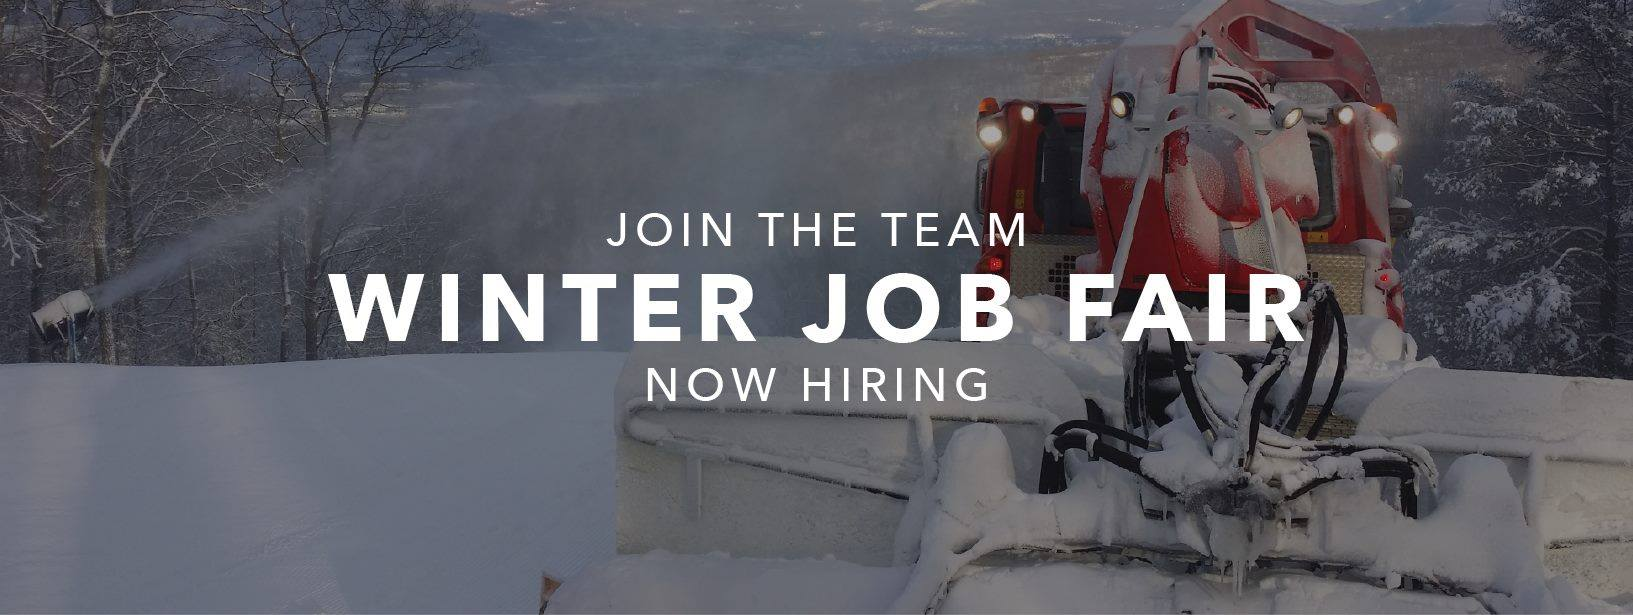 winter job fair pa ski resort skiing snowboarding pennsylvania jobs at montage mountain resorts